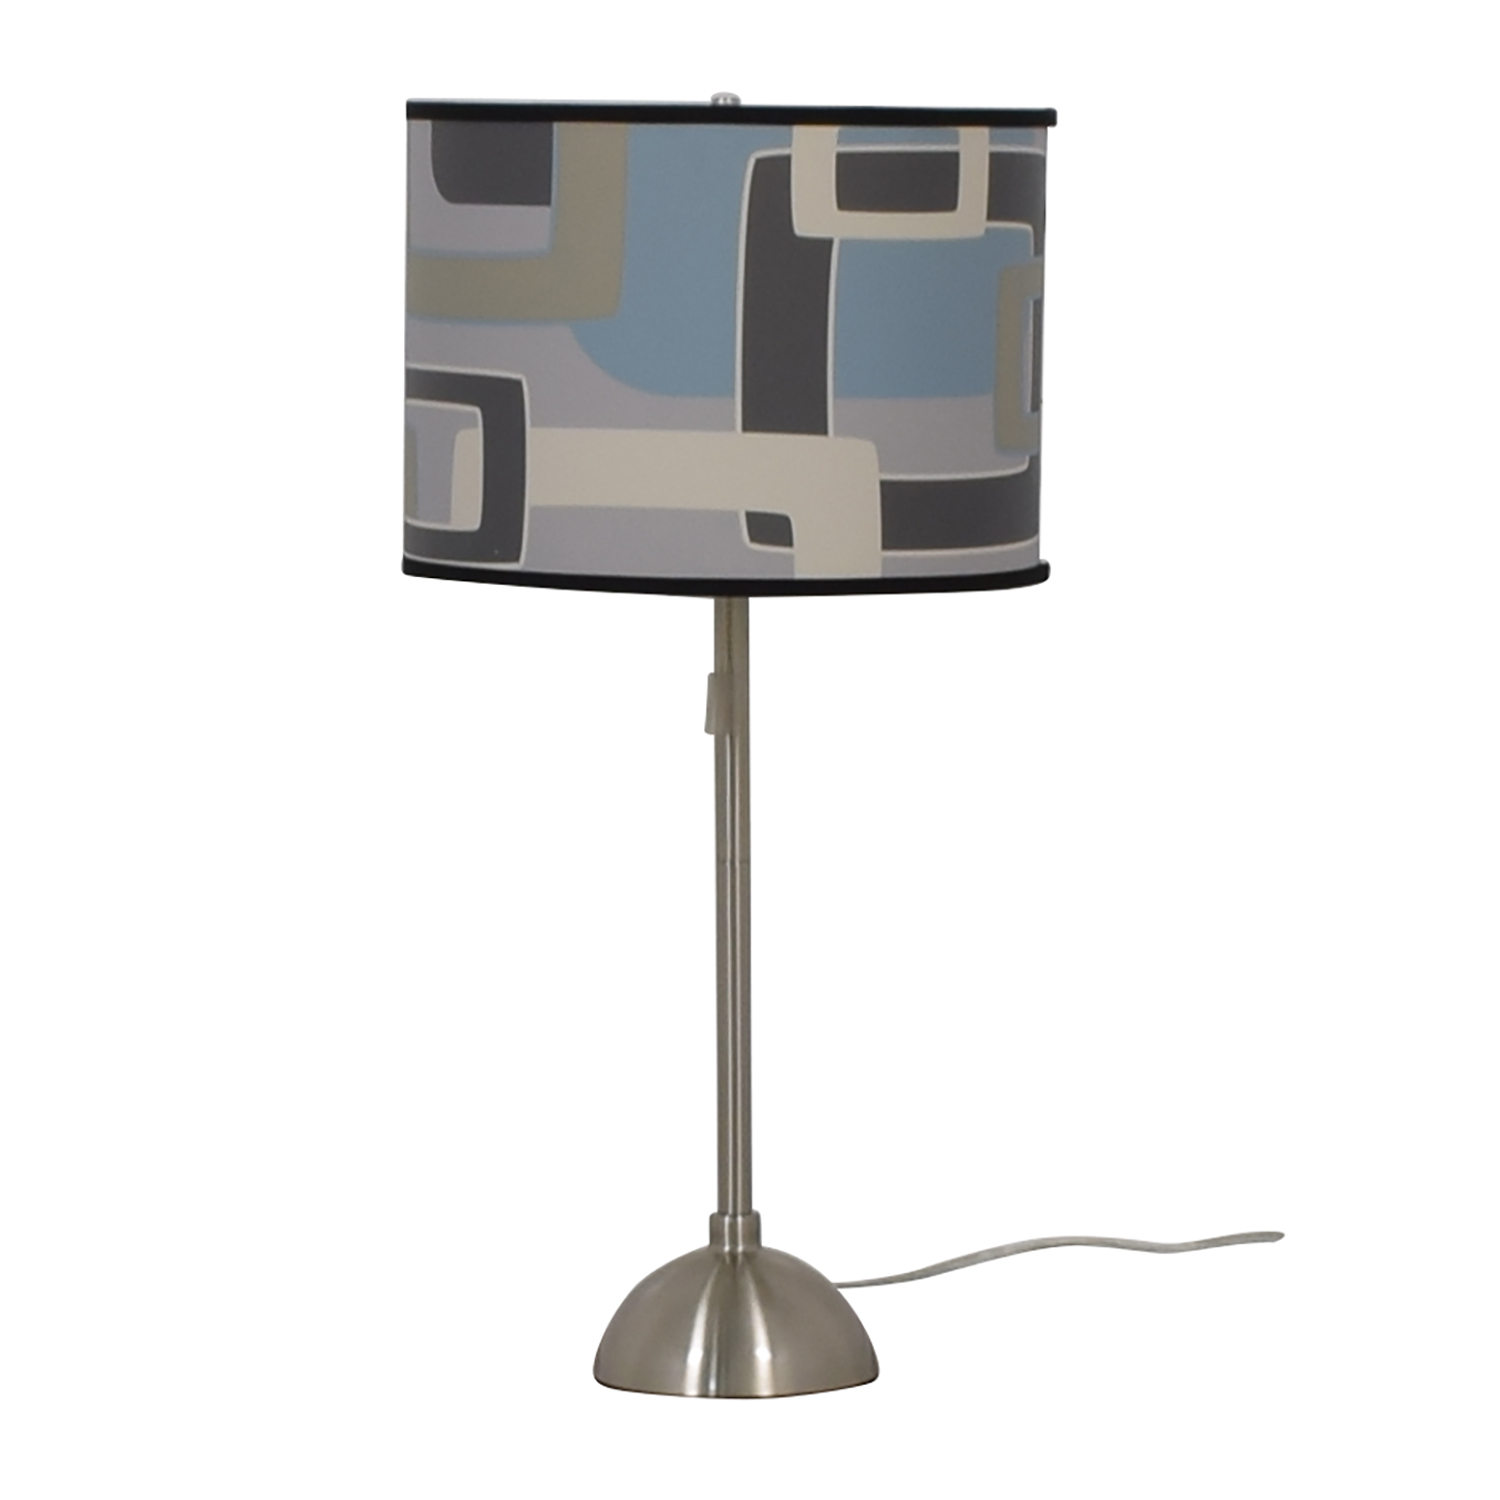 Patterned Table Lamp Decor